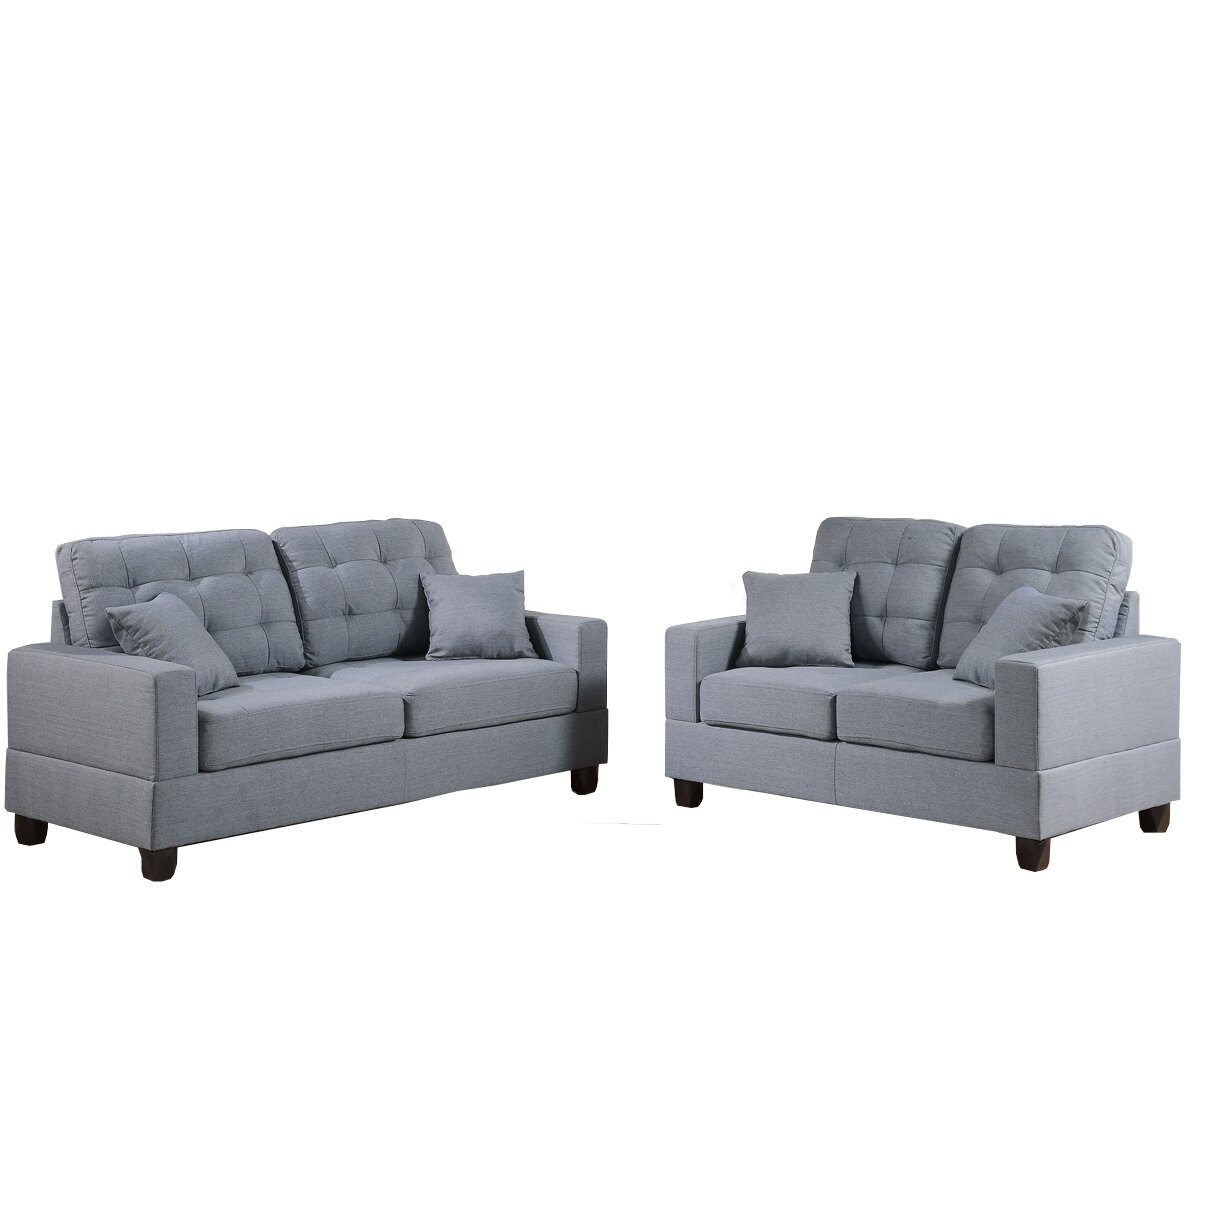 Poundex bobkona aria sofa and loveseat set reviews wayfair for Couch and loveseat